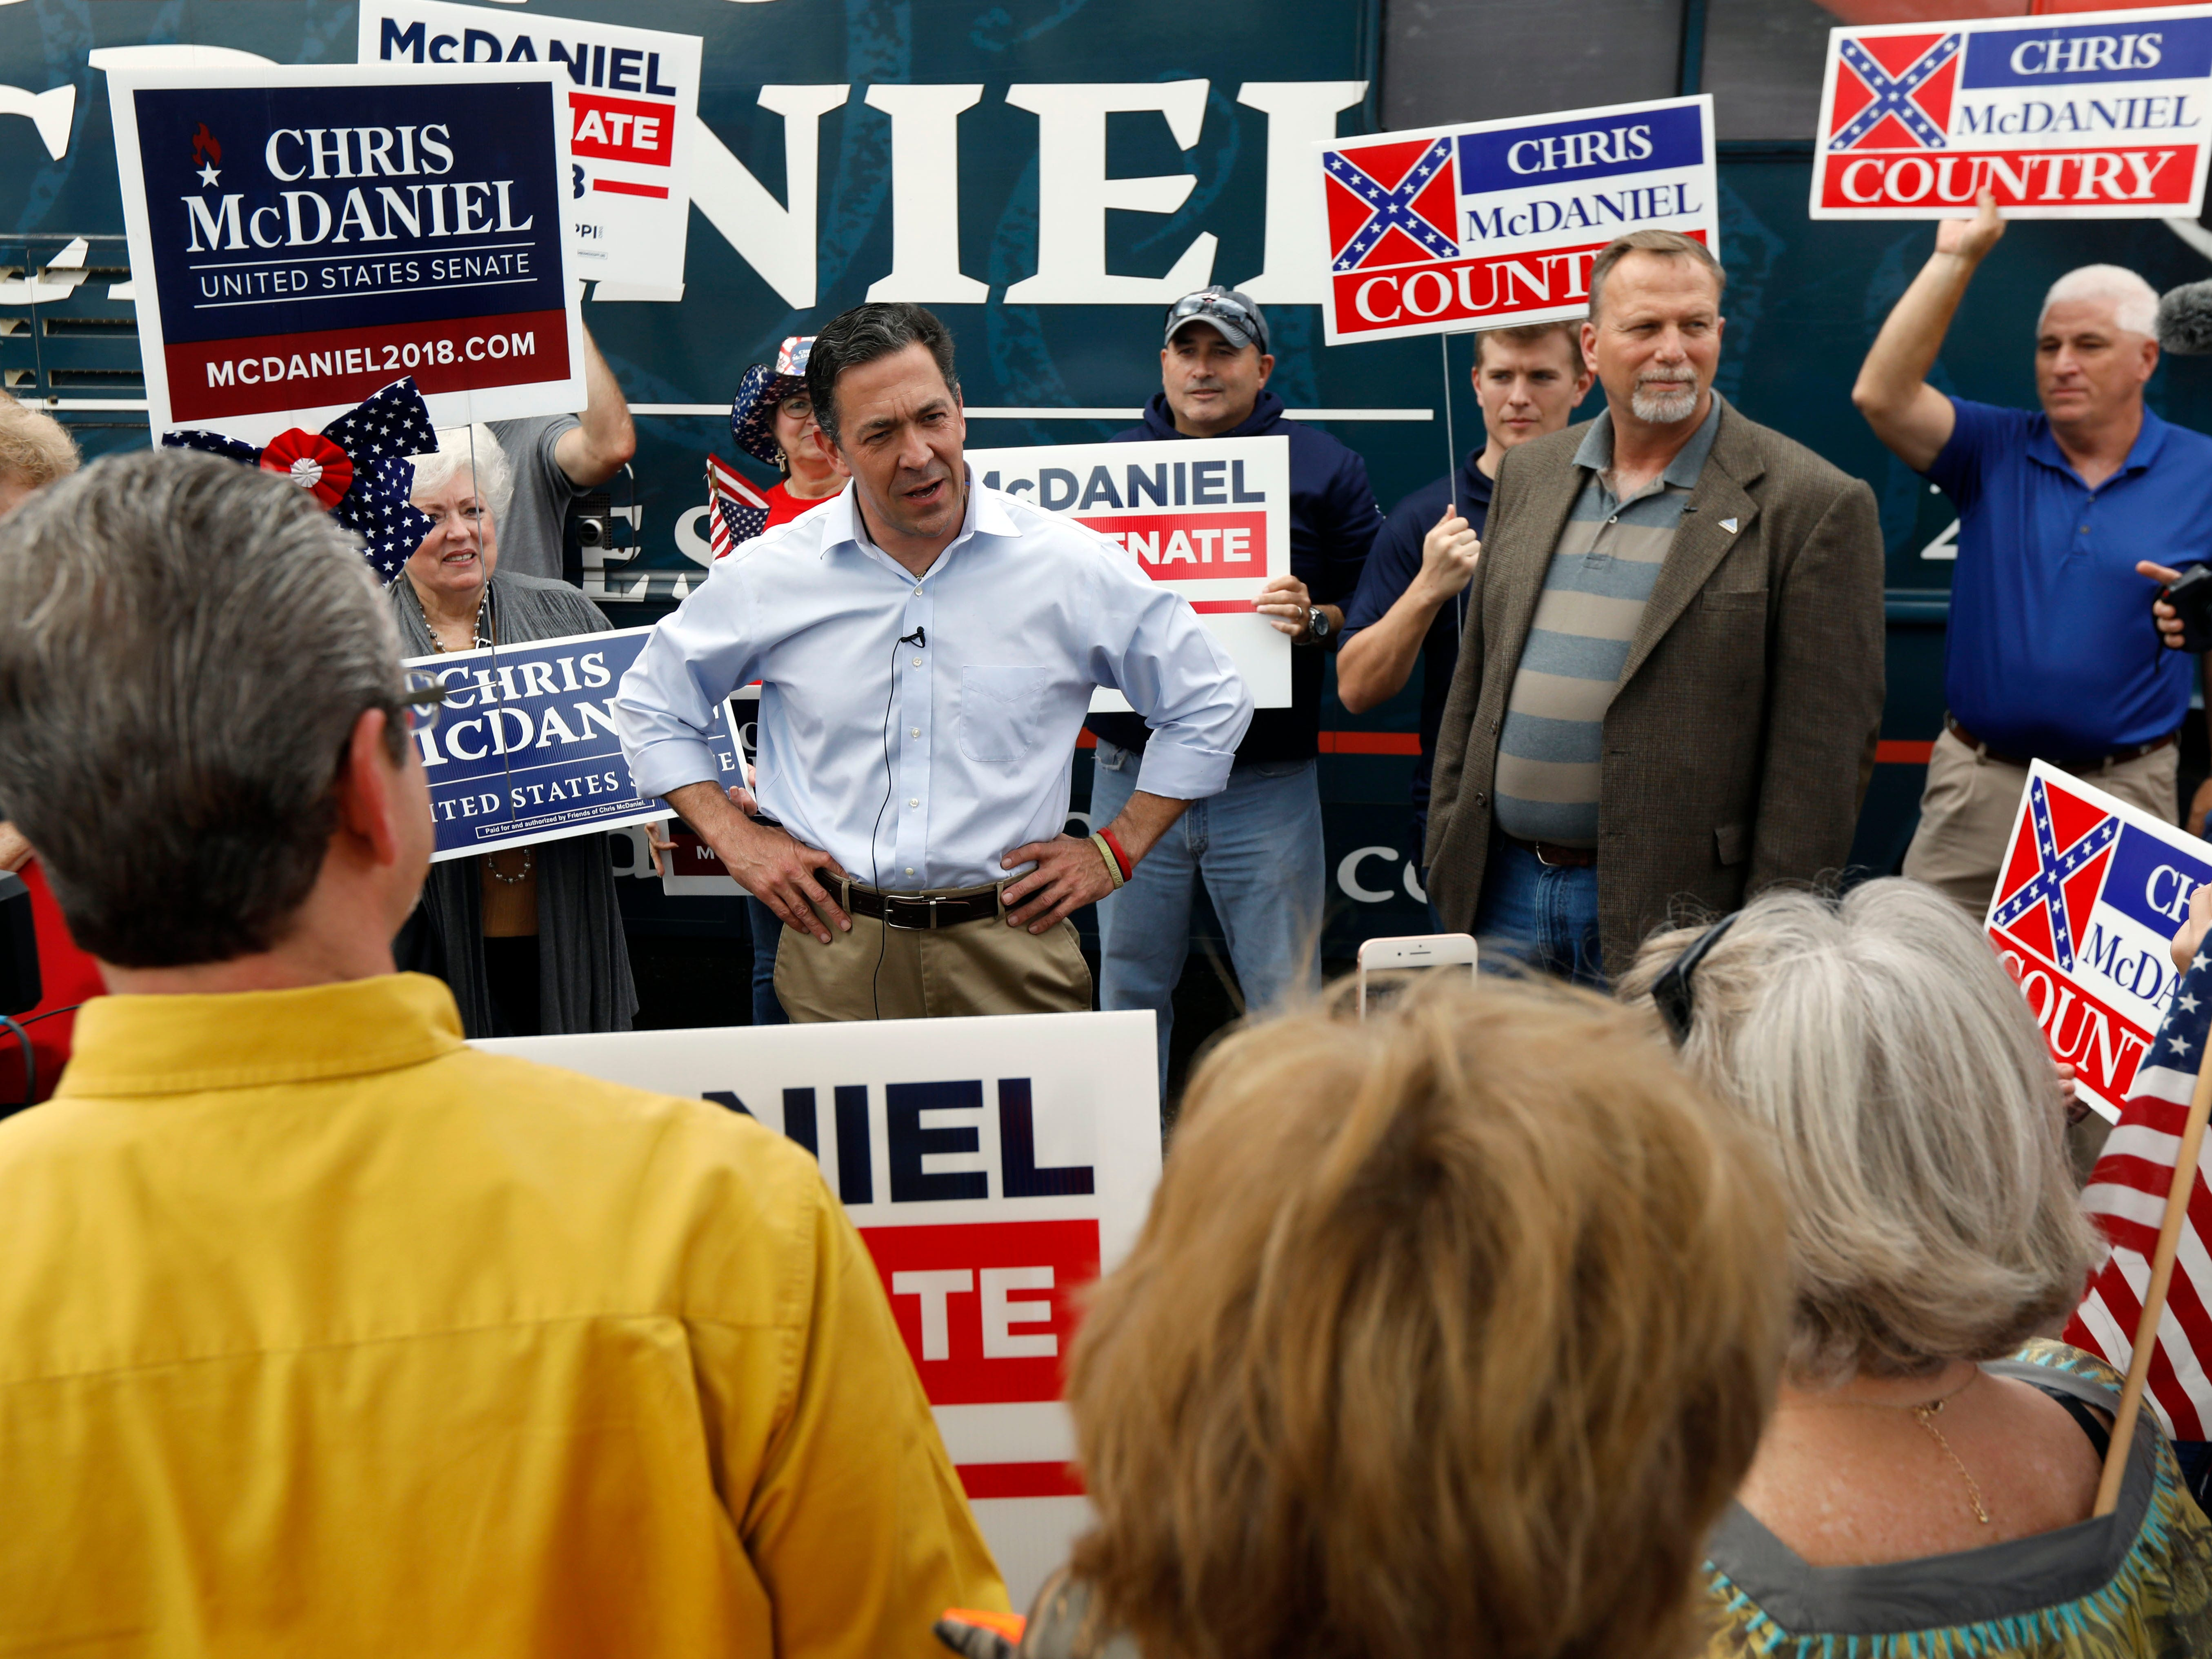 State Sen. Chris McDaniel, R-Ellisville, center, addresses the crowd at a shopping center in Flowood, Miss., Monday, Nov. 5, 2018. McDaniel hopes to unseat appointed U.S. Sen. Cindy Hyde-Smith, R-Miss., and serve the last two years of the six-year term vacated when Republican Thad Cochran retired for health reasons.